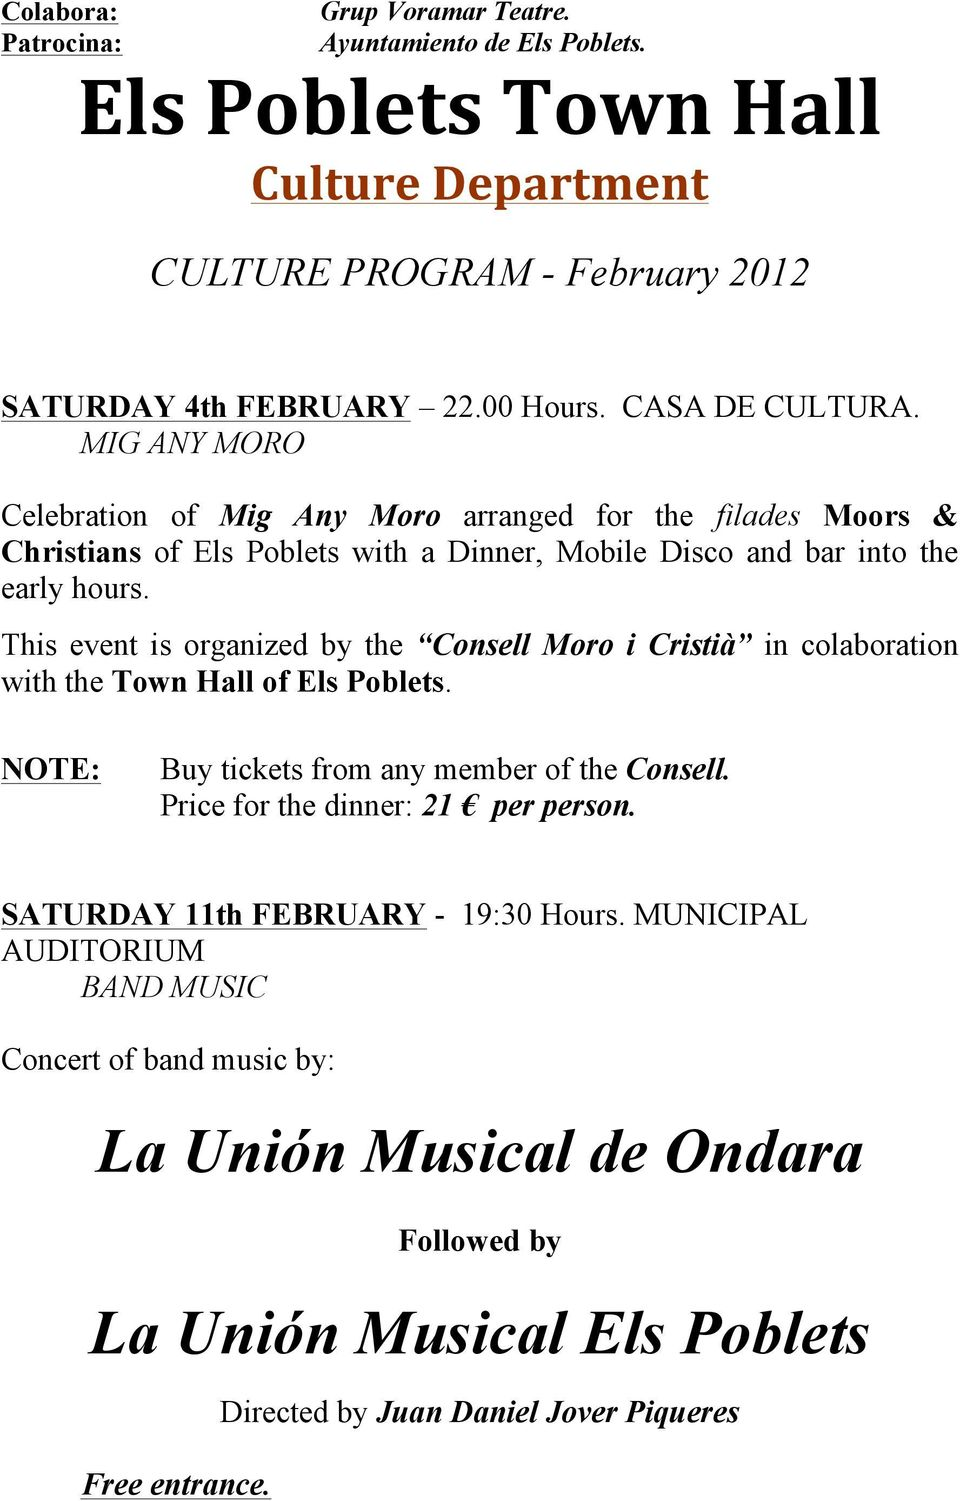 This event is organized by the Consell Moro i Cristià in colaboration with the Town Hall of Els Poblets. NOTE: Buy tickets from any member of the Consell. Price for the dinner: 21 per person.